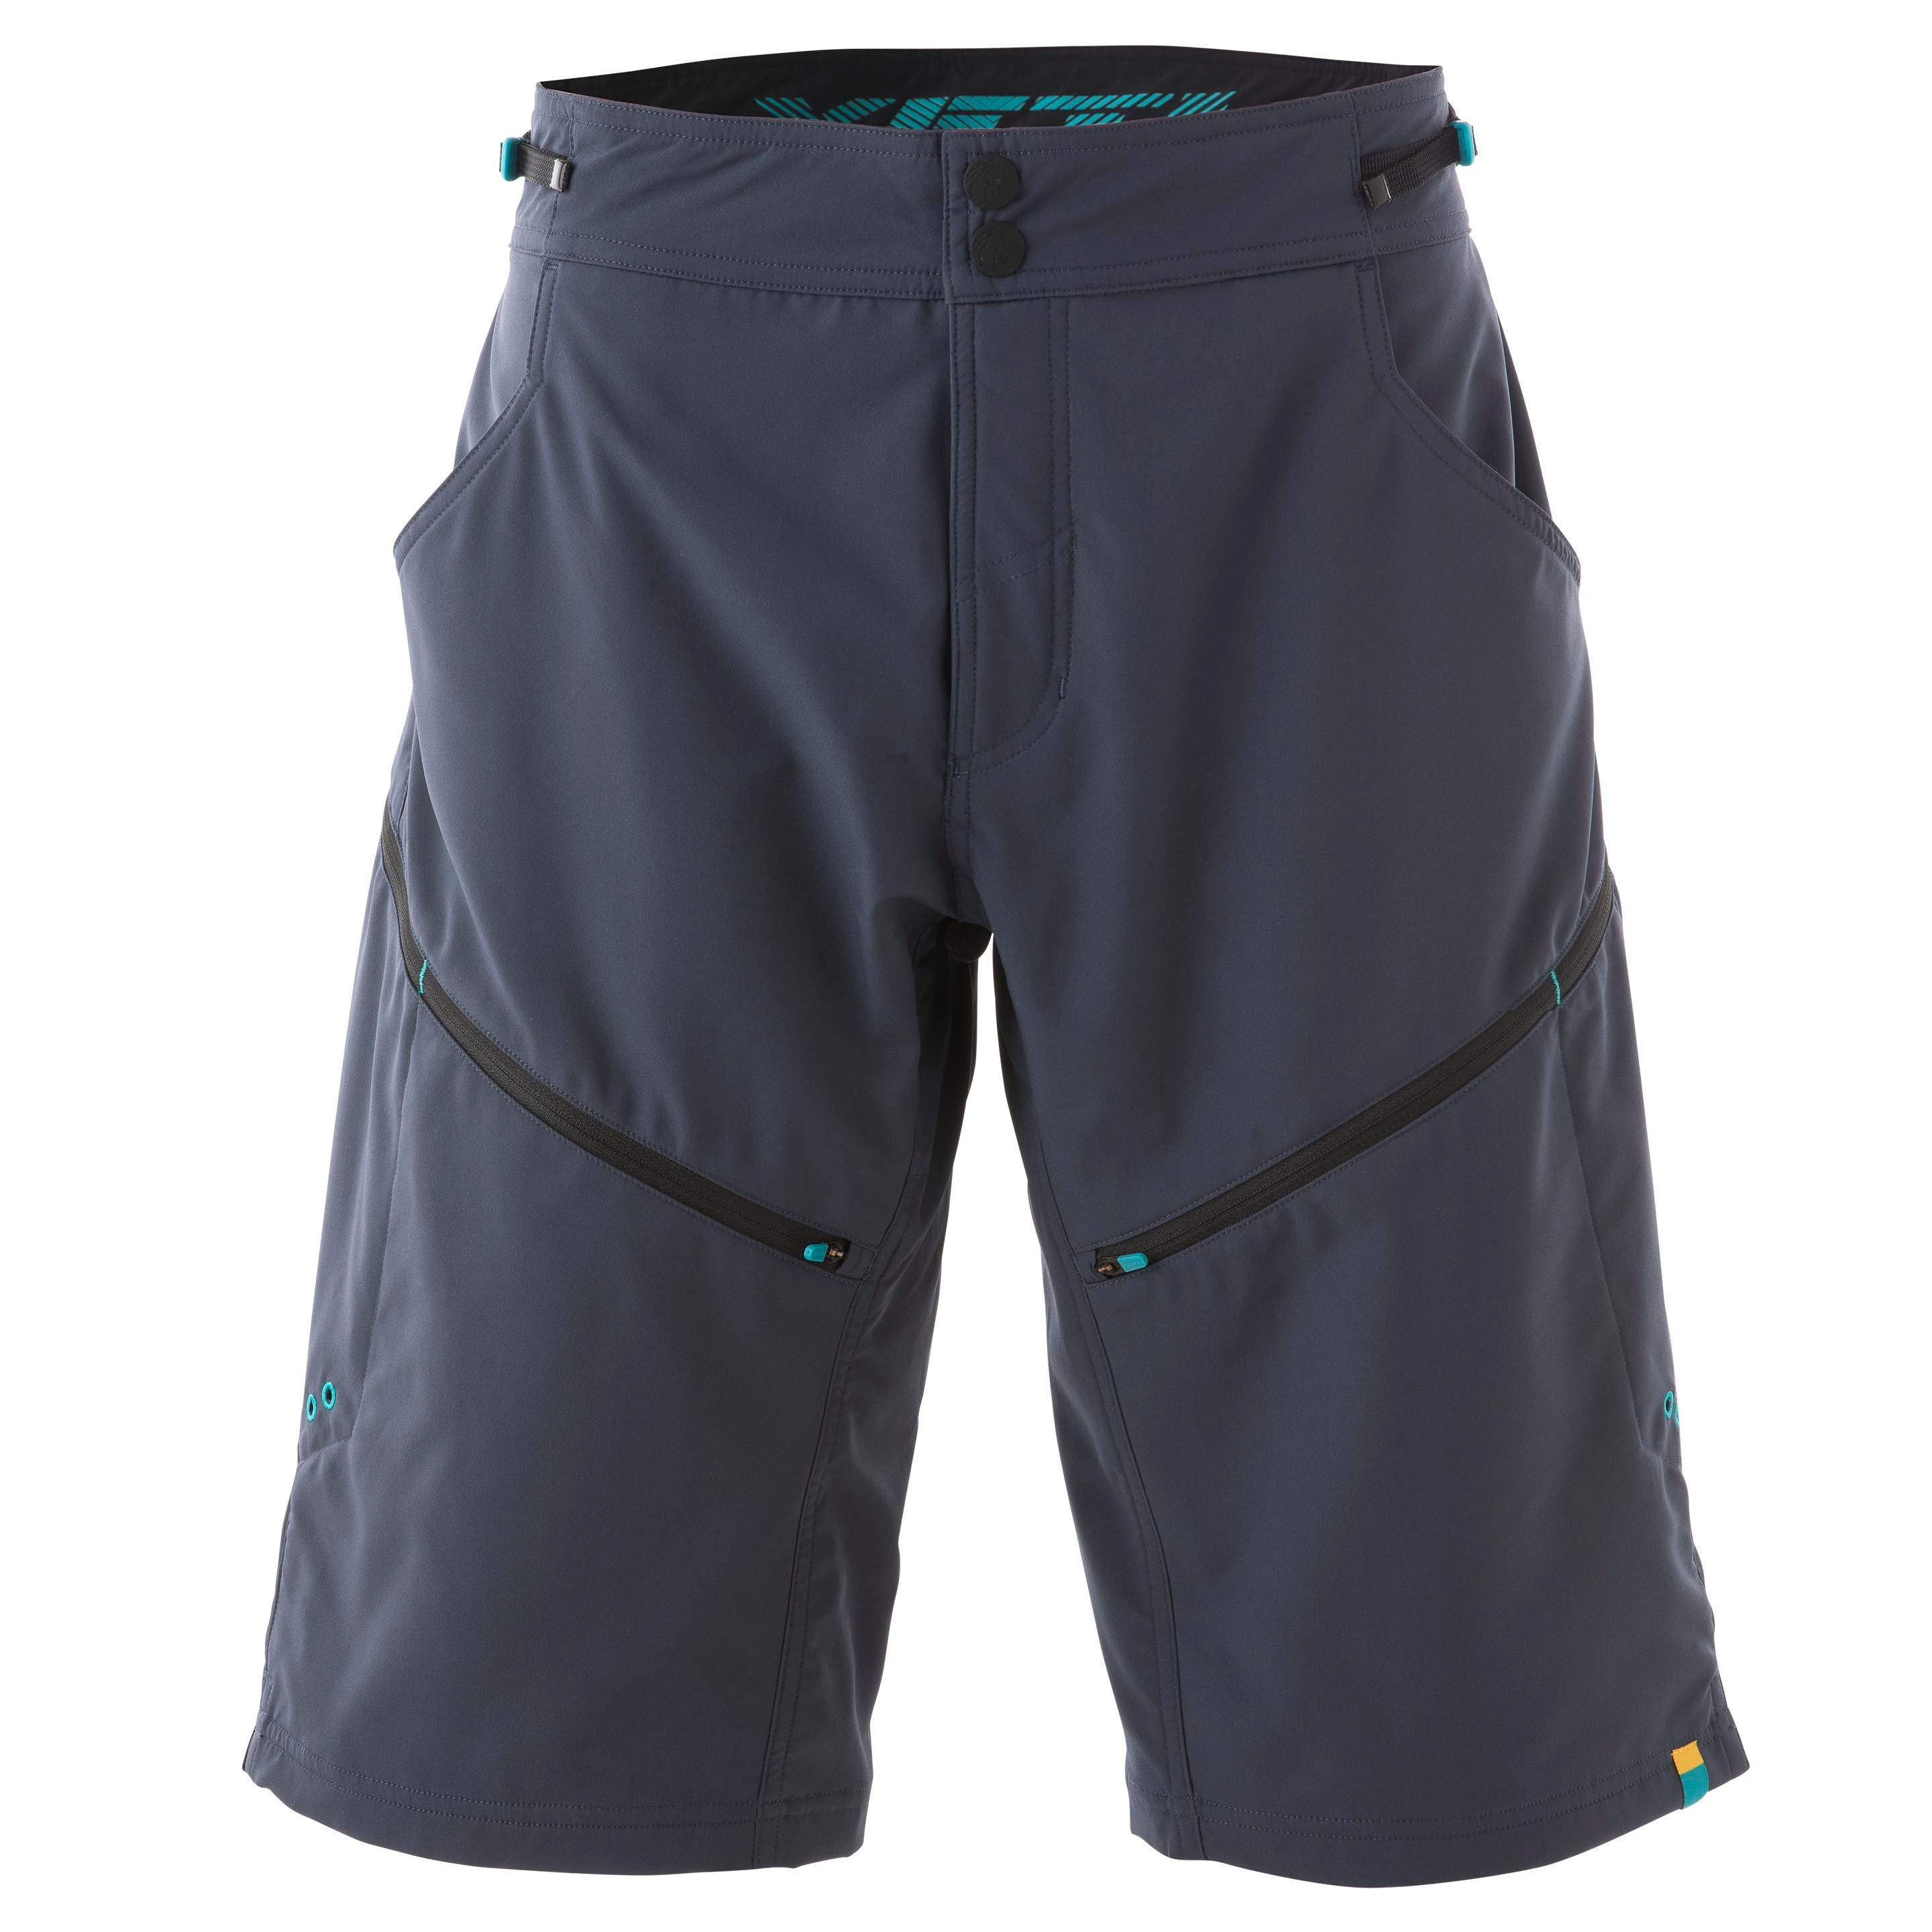 FREELAND 2.0 SHORT NAVY 20